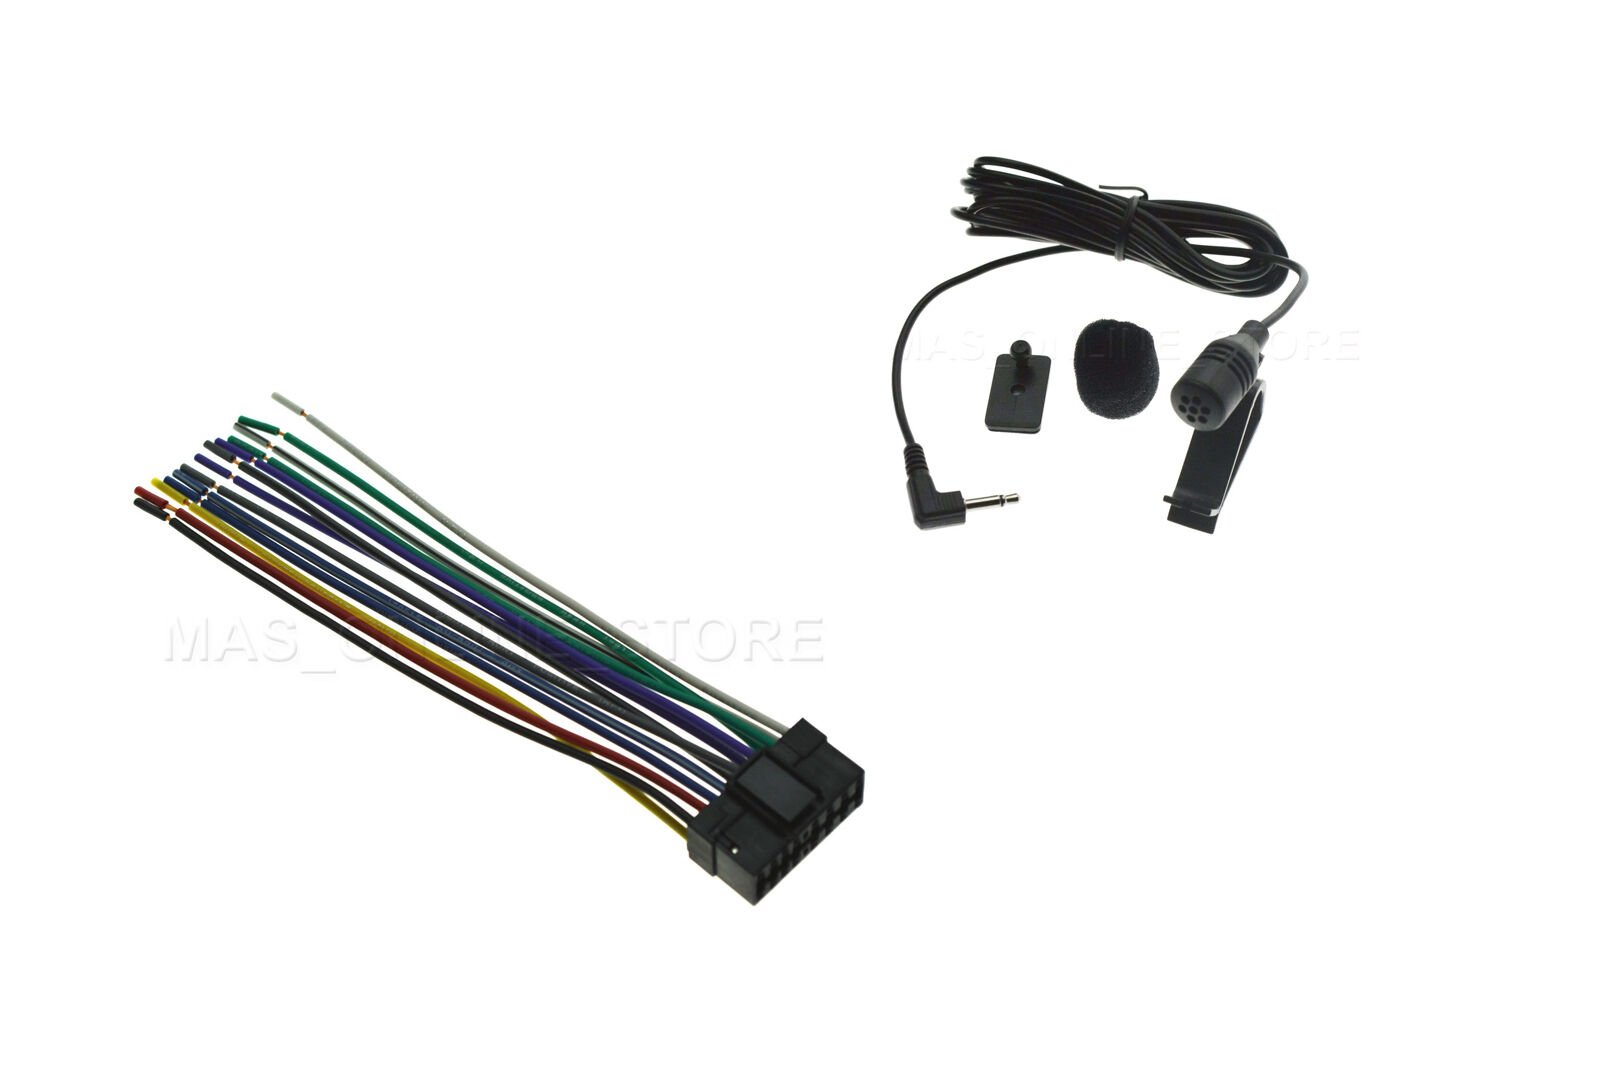 Wire Harness & Microphone Mic For Sony Xav-601Bt Xav601Bt *ships Today* 1  of 8FREE Shipping ...